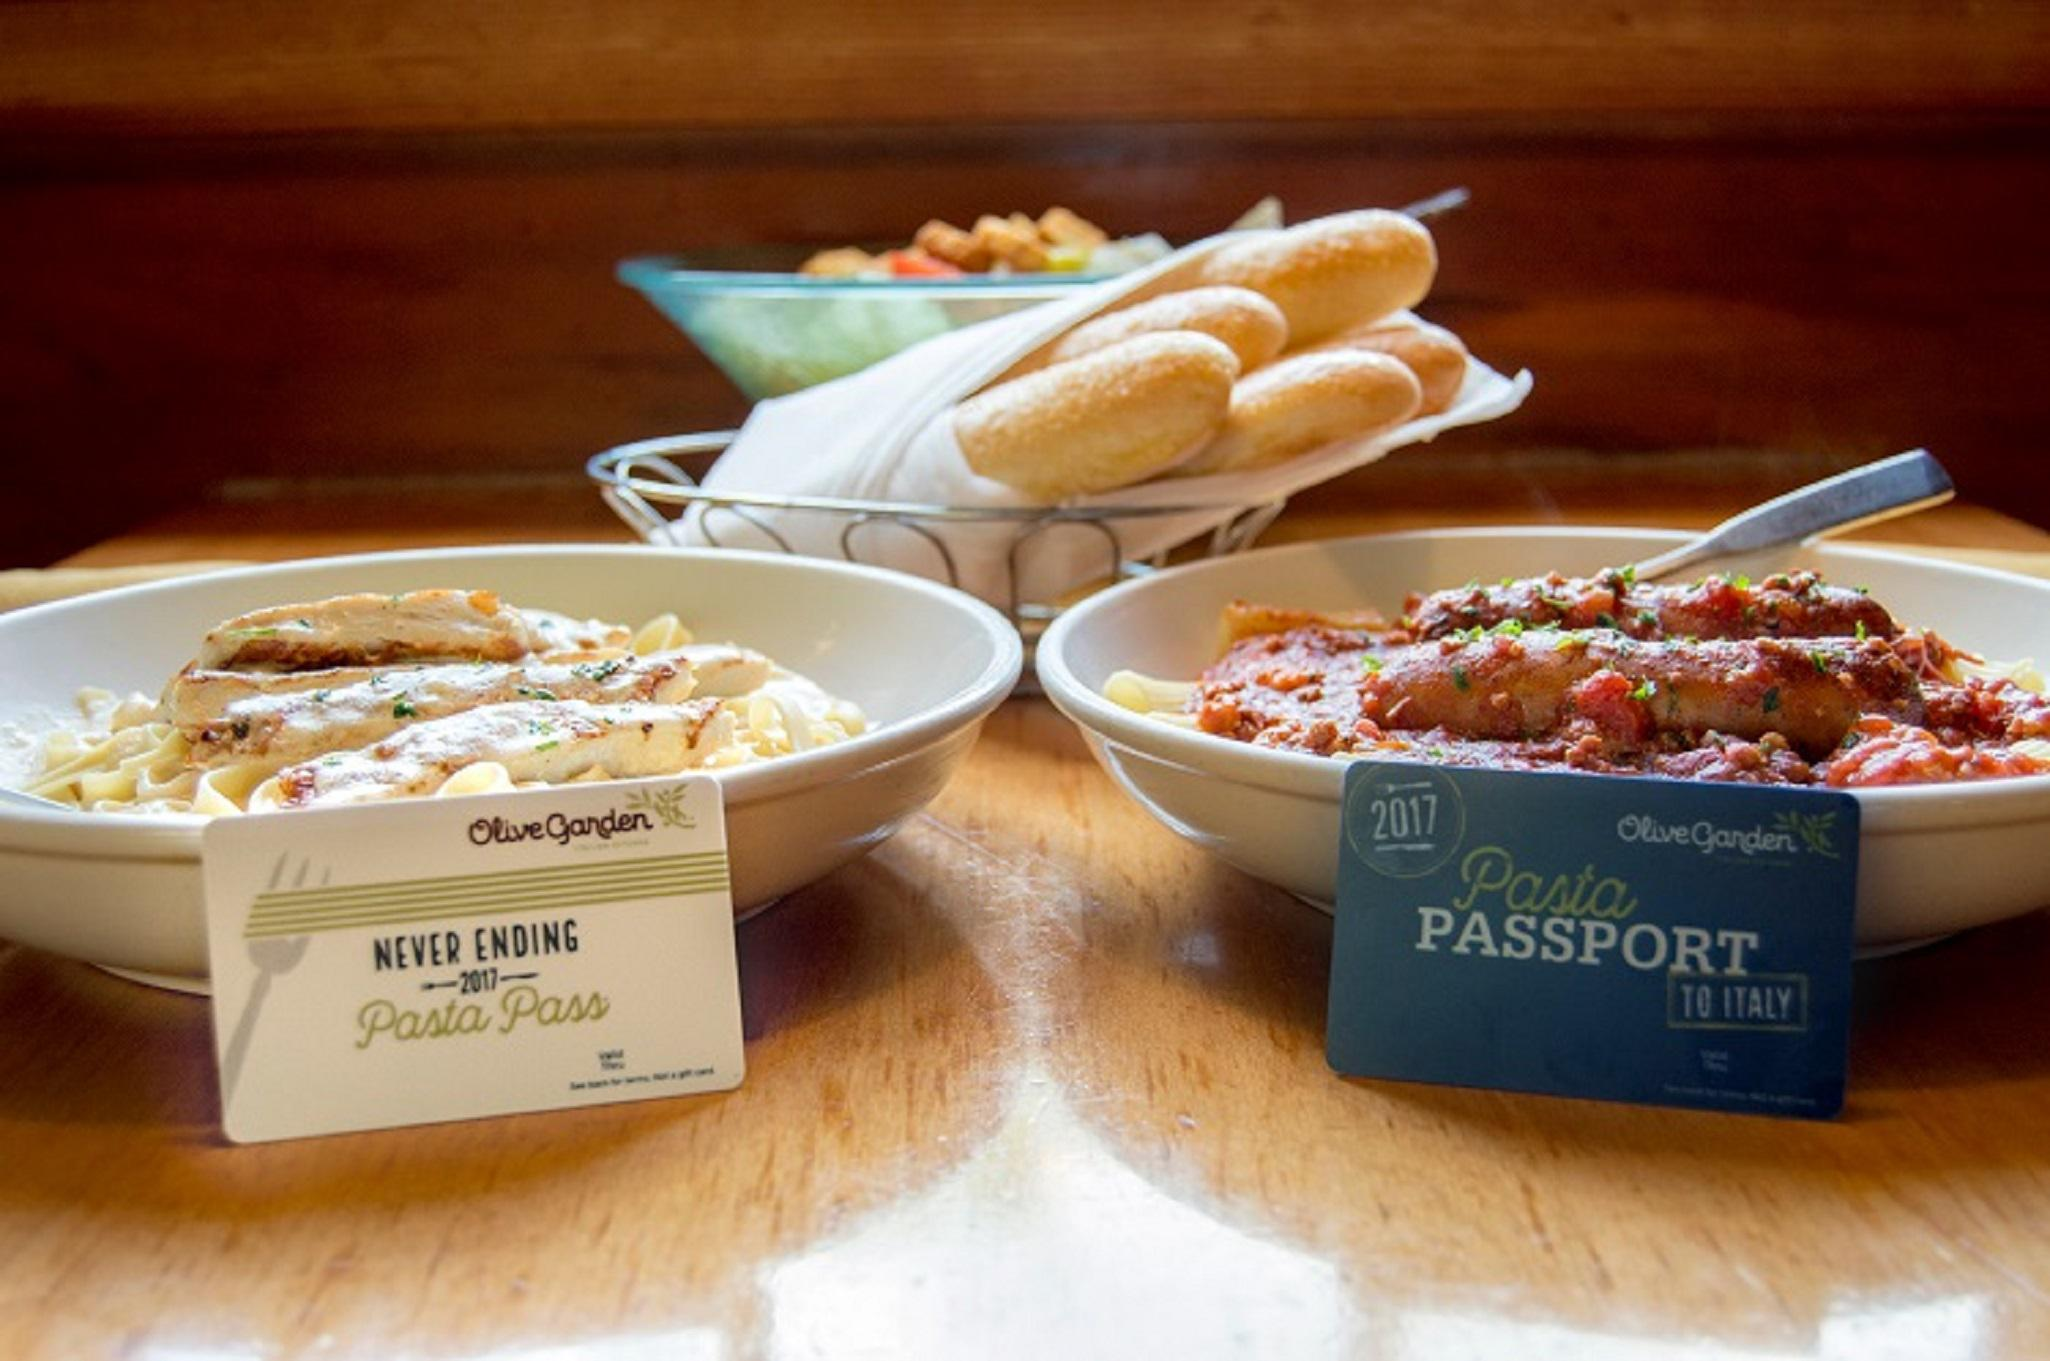 Pastor Lost Weight Eating Olive Garden\'s Unlimited Pasta for Every Meal